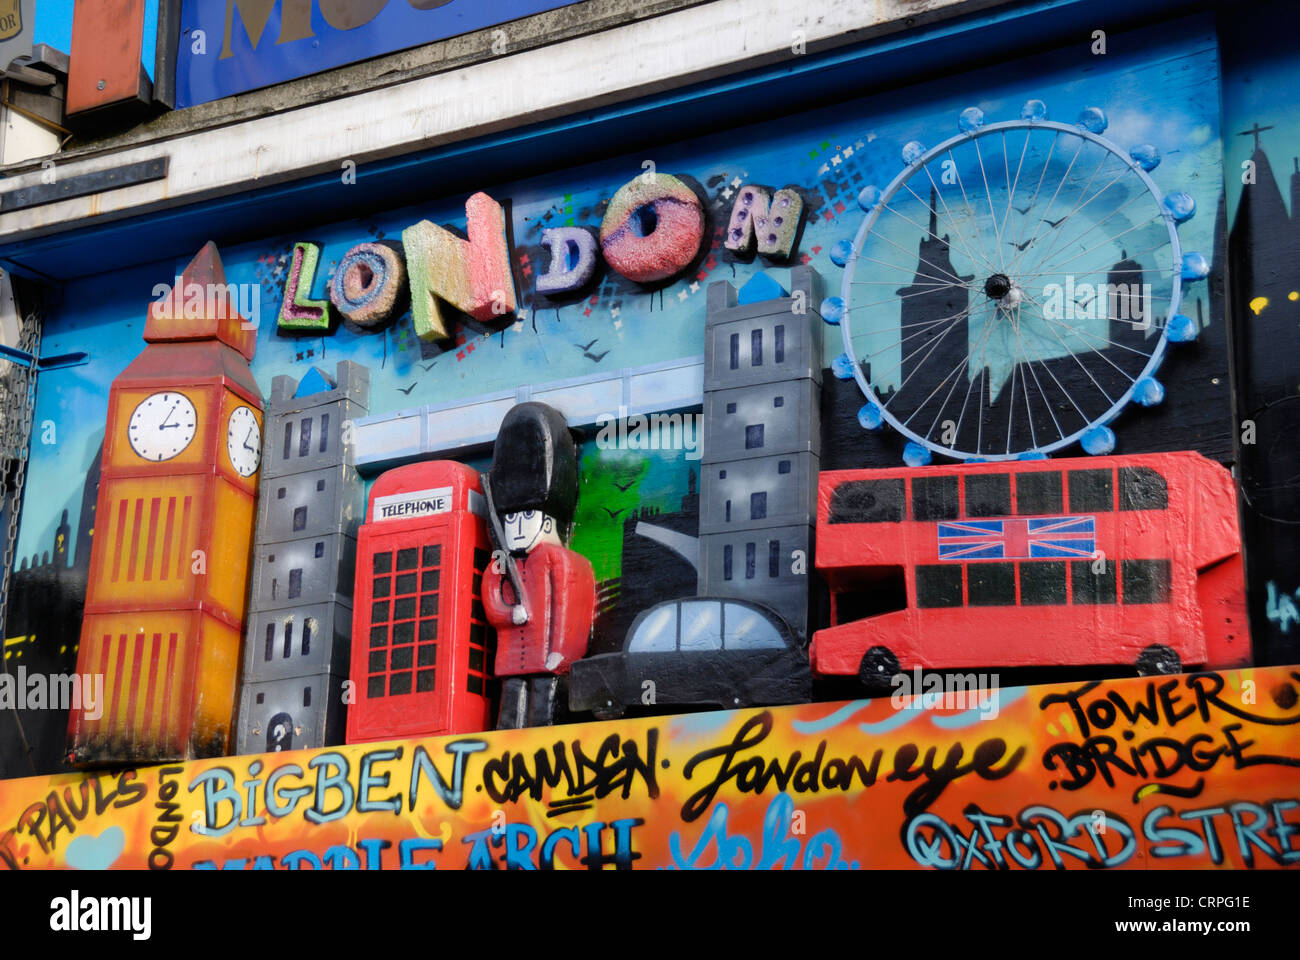 Collage formed from models of London tourist icons outside a shop. - Stock Image